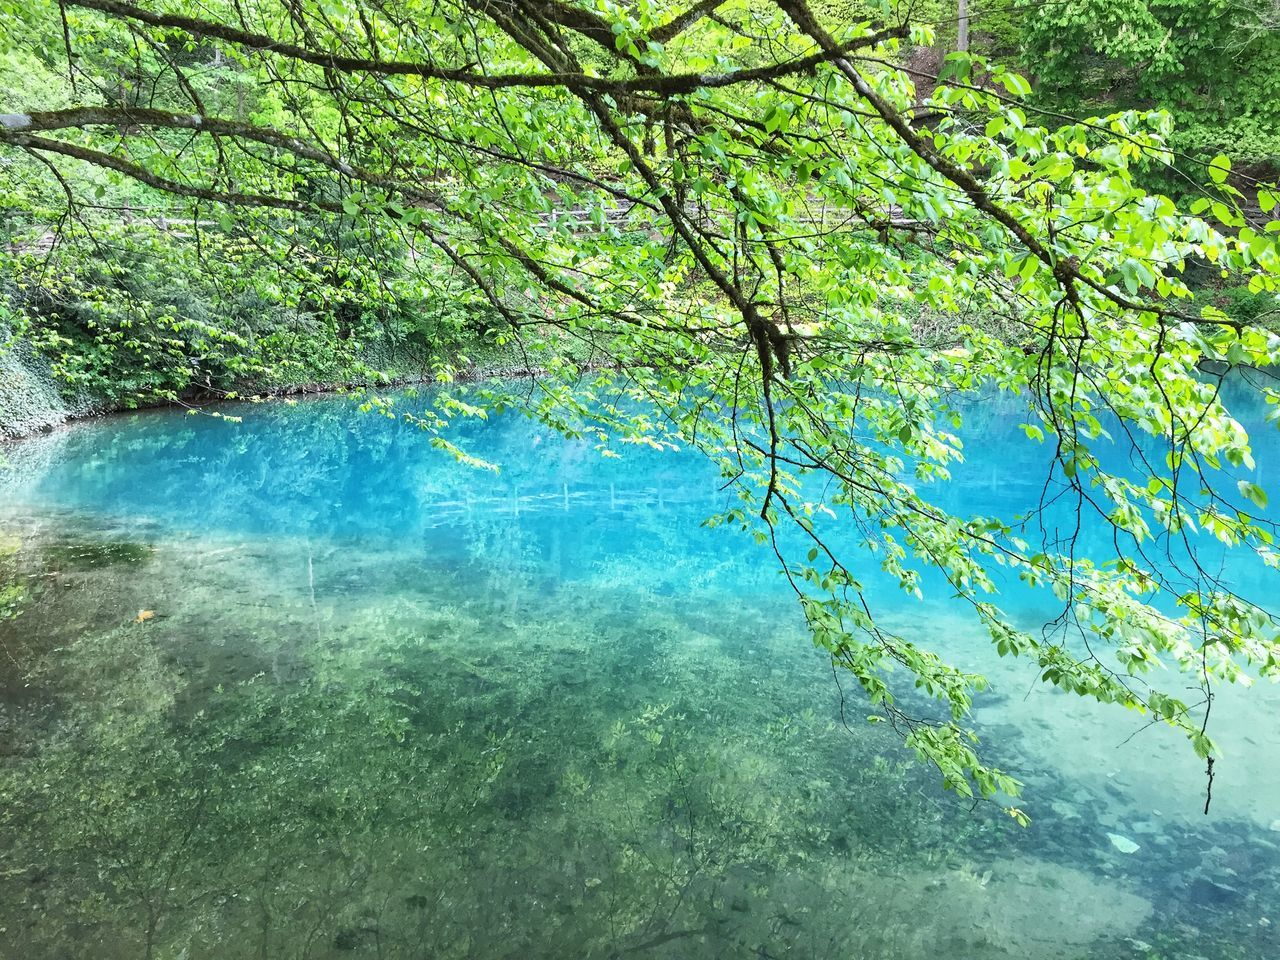 tree, plant, beauty in nature, water, tranquility, growth, nature, day, branch, forest, scenics - nature, no people, lake, green color, waterfront, reflection, tranquil scene, idyllic, land, outdoors, clean, turquoise colored